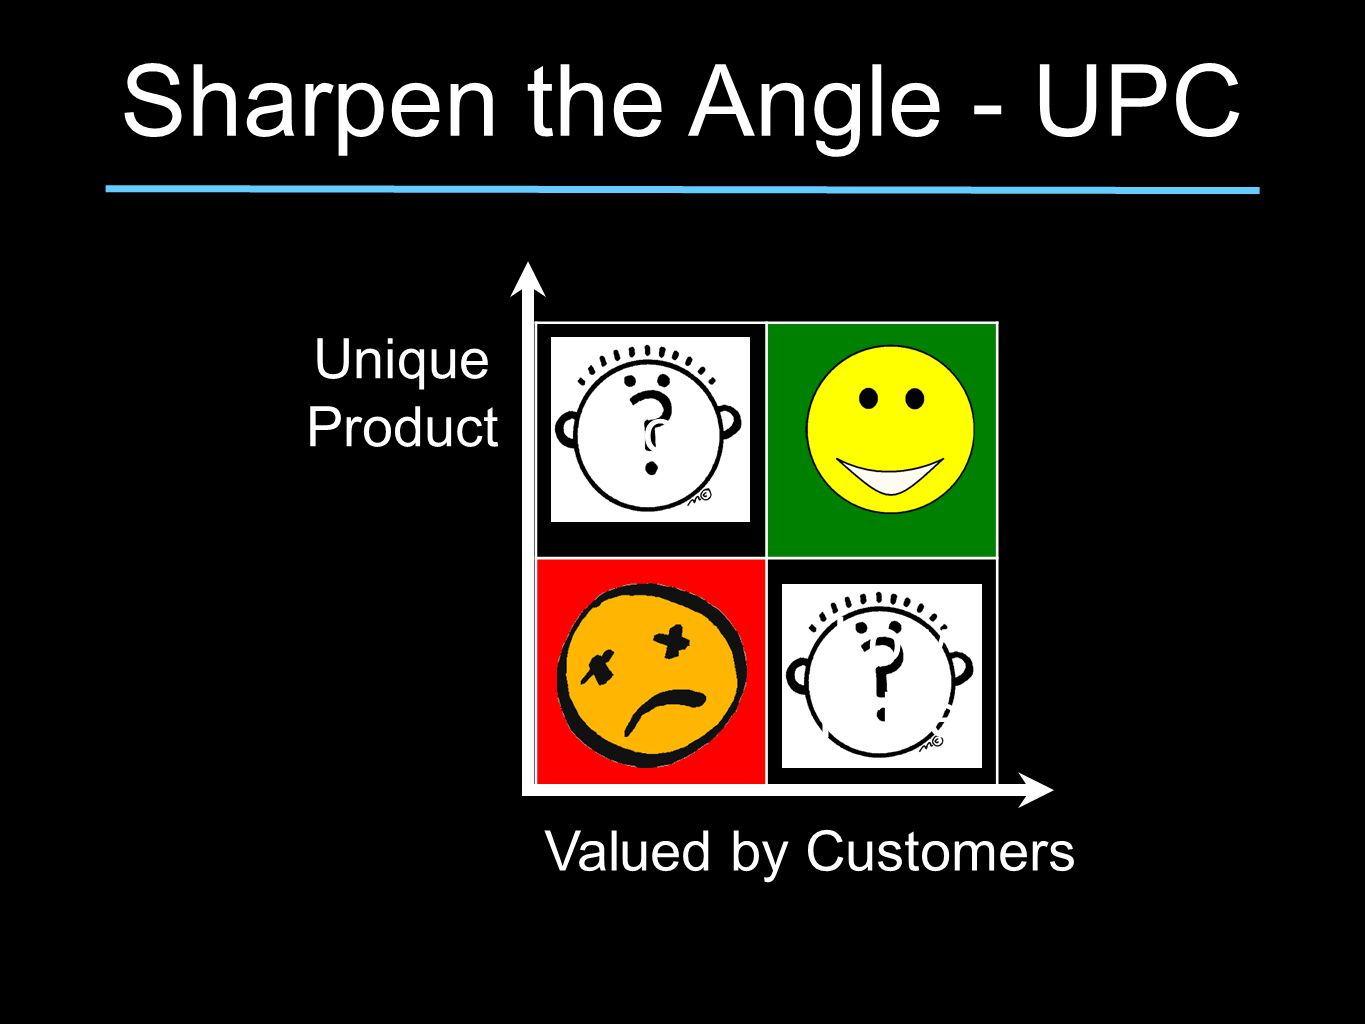 Sharpen the Angle - UPC Unique Product Valued by Customers Flop Low Price